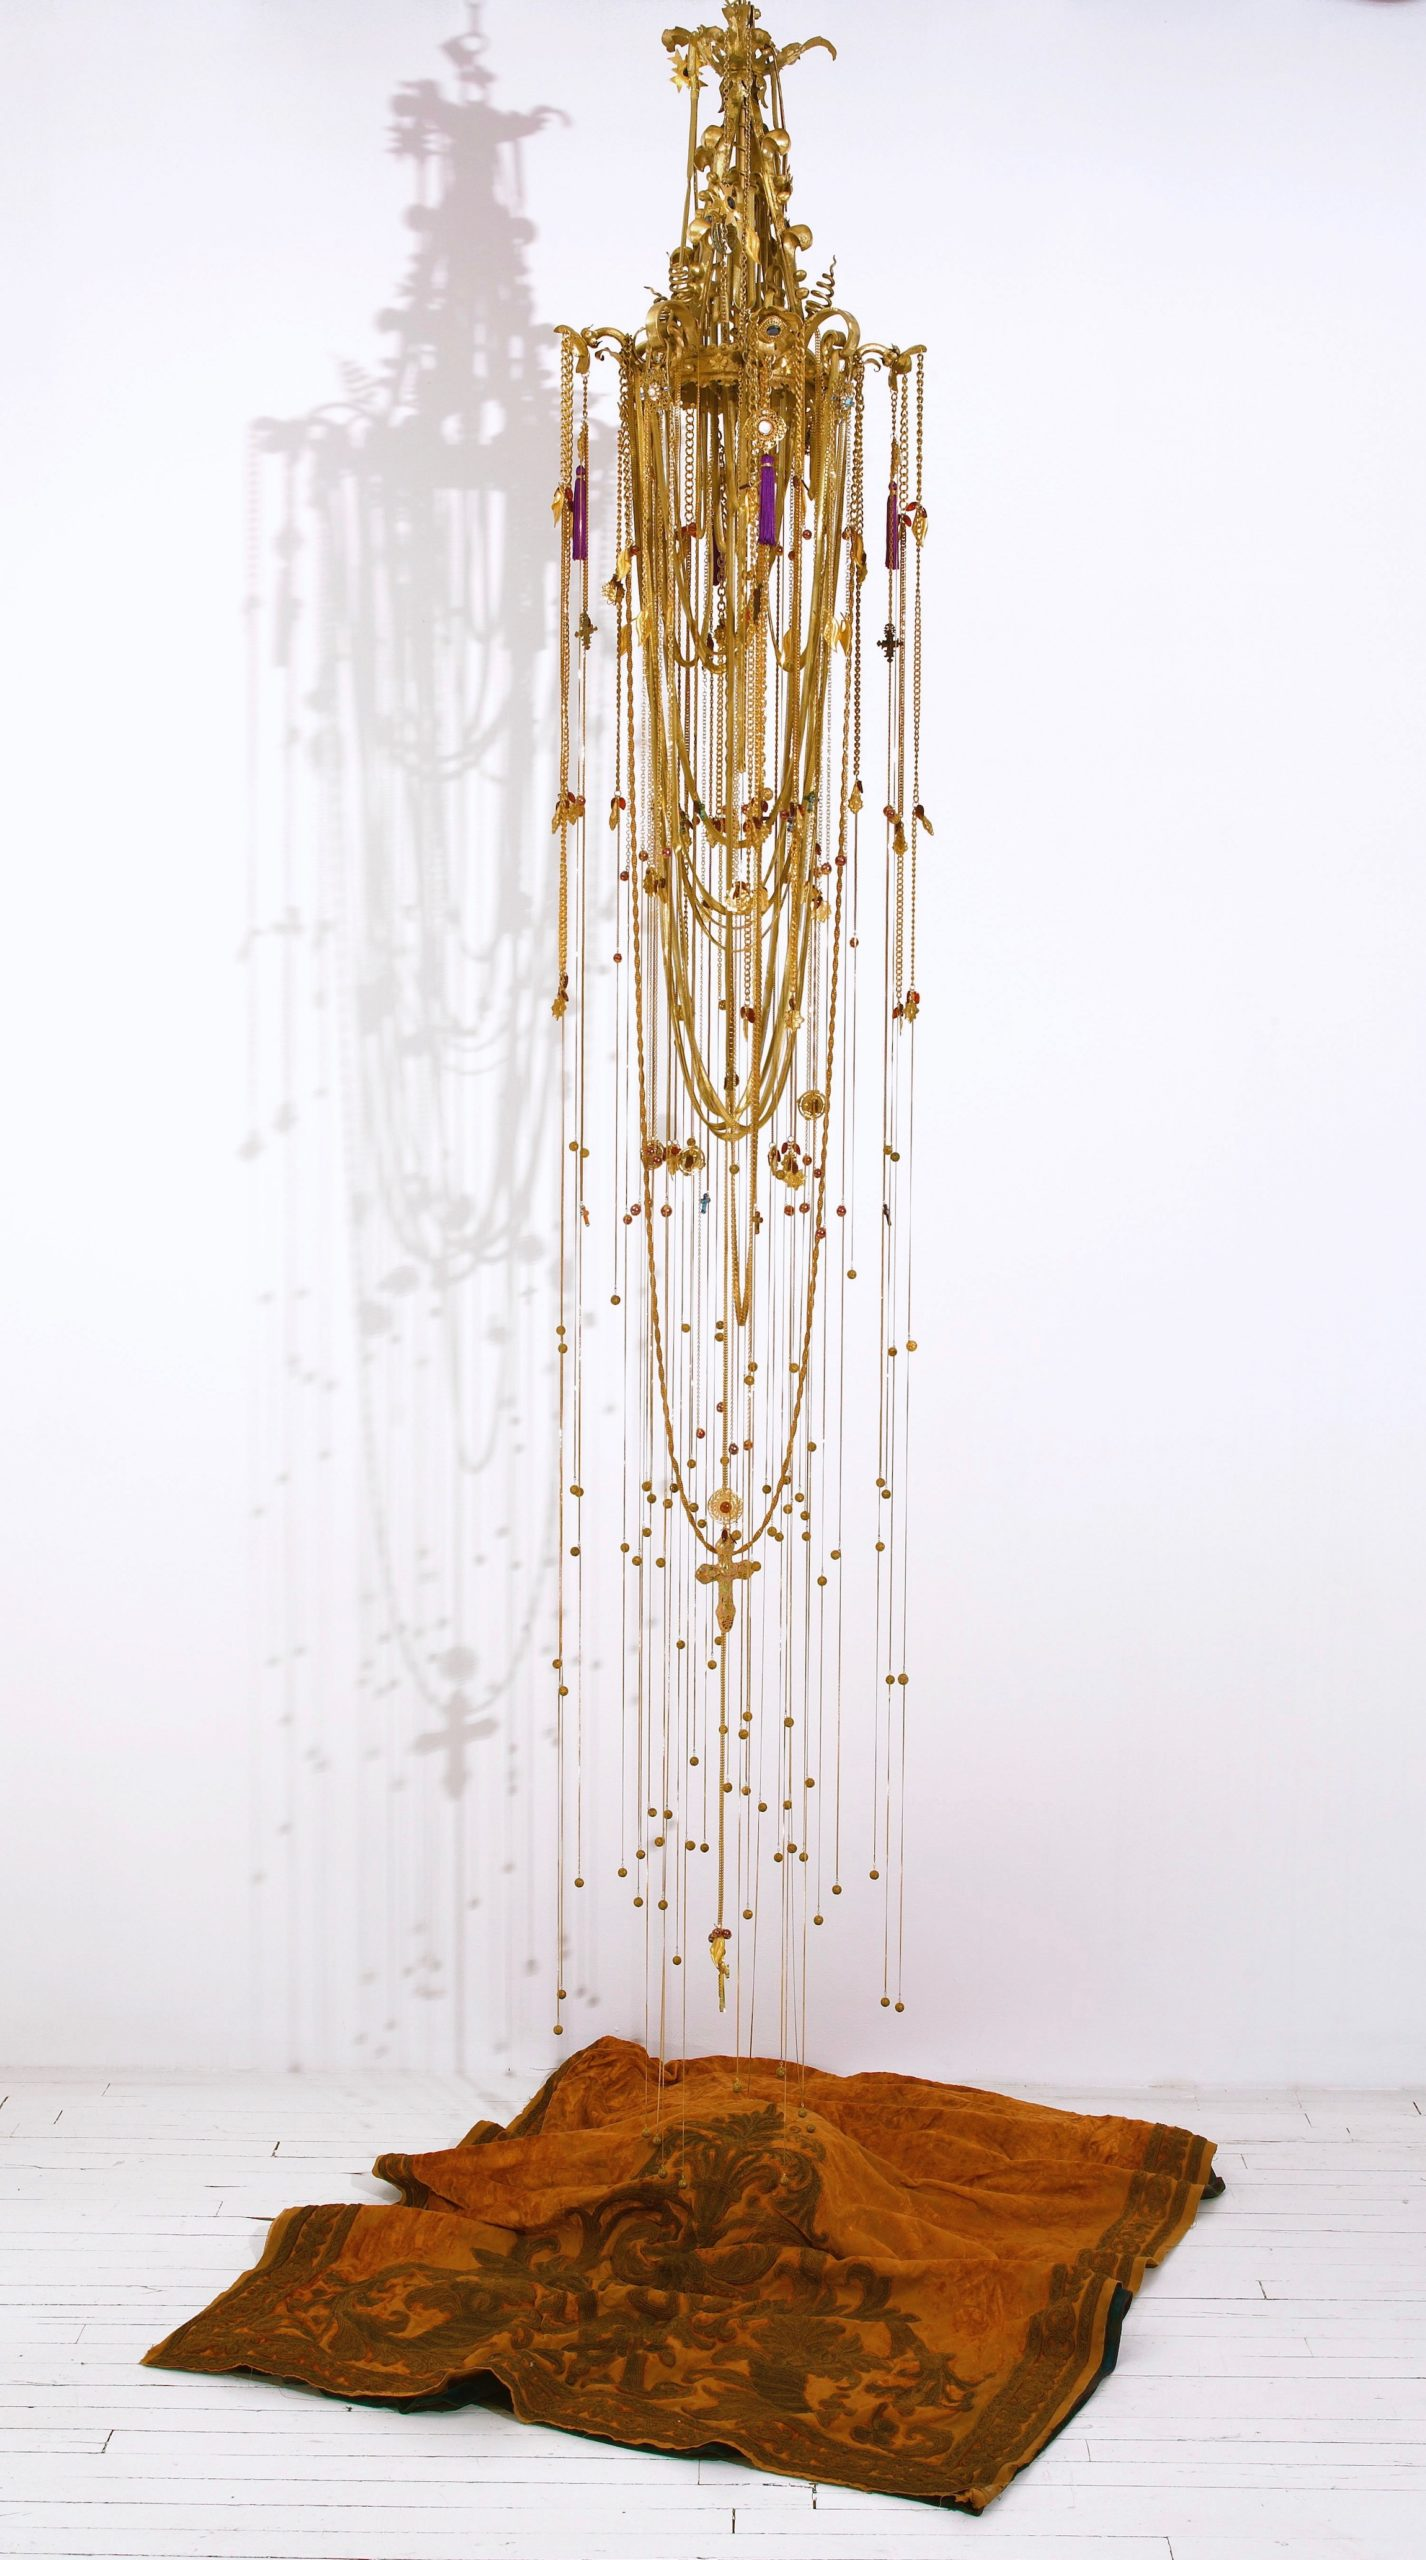 Esperanza Cortés; EMPIRE; 2016; Chandelier, gold leaf, 1000 feet of gold plated jewelry chain, gold plated metal leaves, brass beads, glass beads; 18' L x 6' Diameter. The history of colonial empire is the history of the Americas, specially places like my birthplace Colombia.